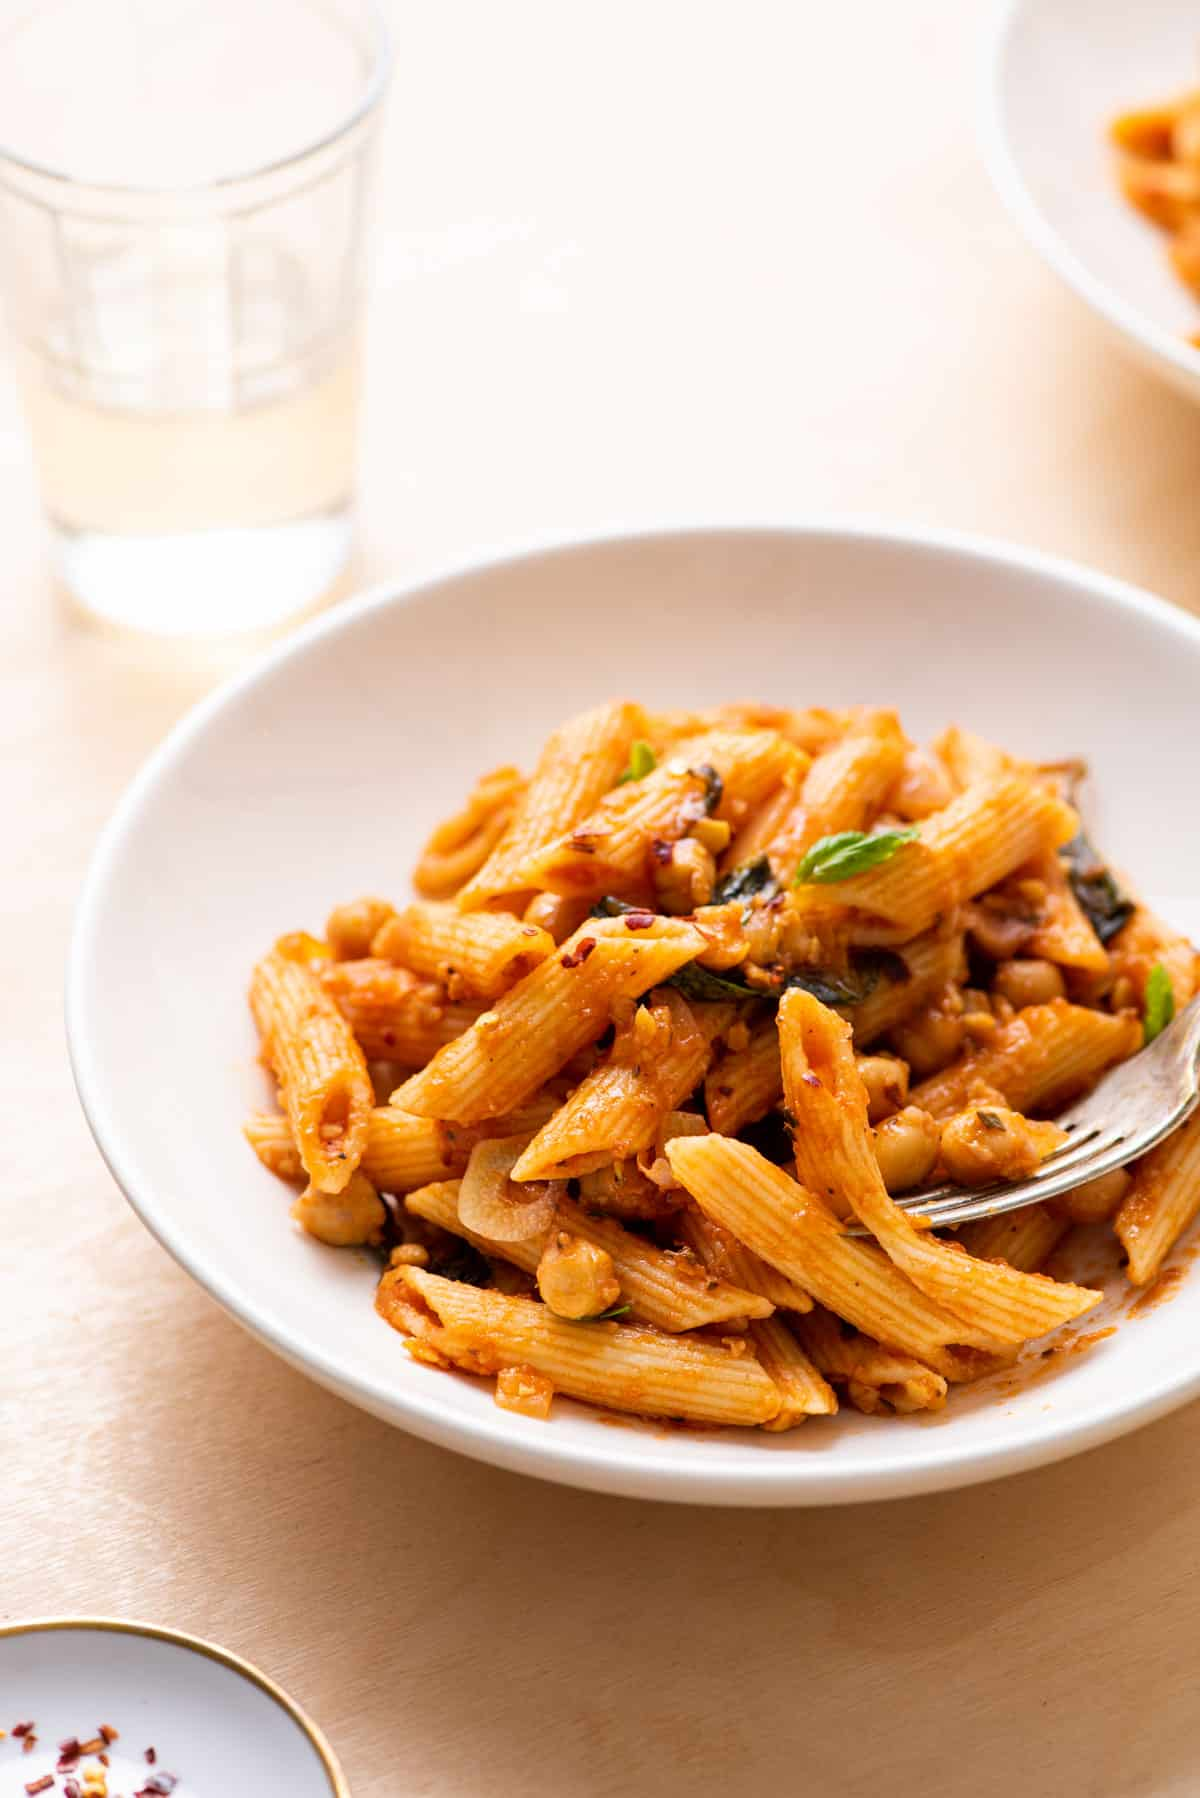 Penne with chickpea-tomato sauce with basil and chili flakes.